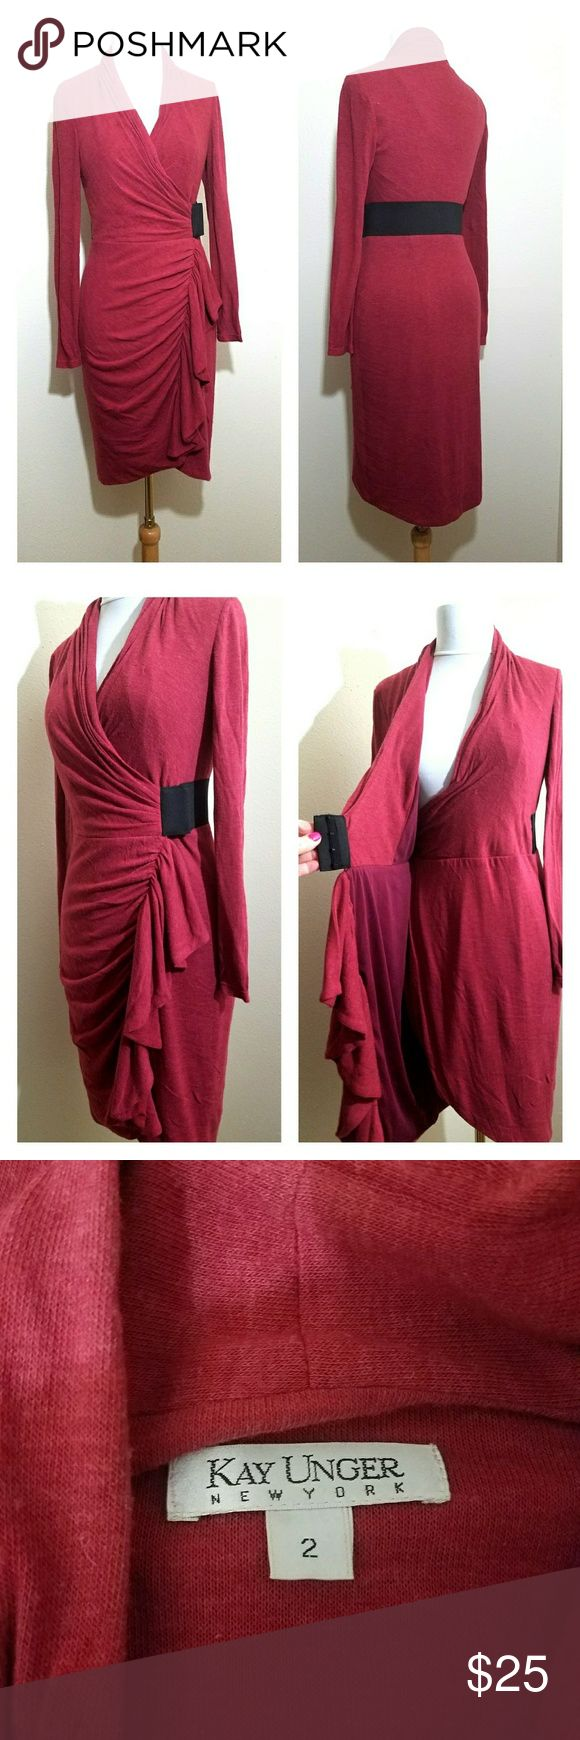 Kay Unger stretch wool wrap dress 2 Nice wrap Kay Unger stretch wool wrap dress. Light burgundy color. Bust is approximately 36 inches.  Length is approximately 41 inches.  Very good condition.  Smoke free home Kay Unger Dresses